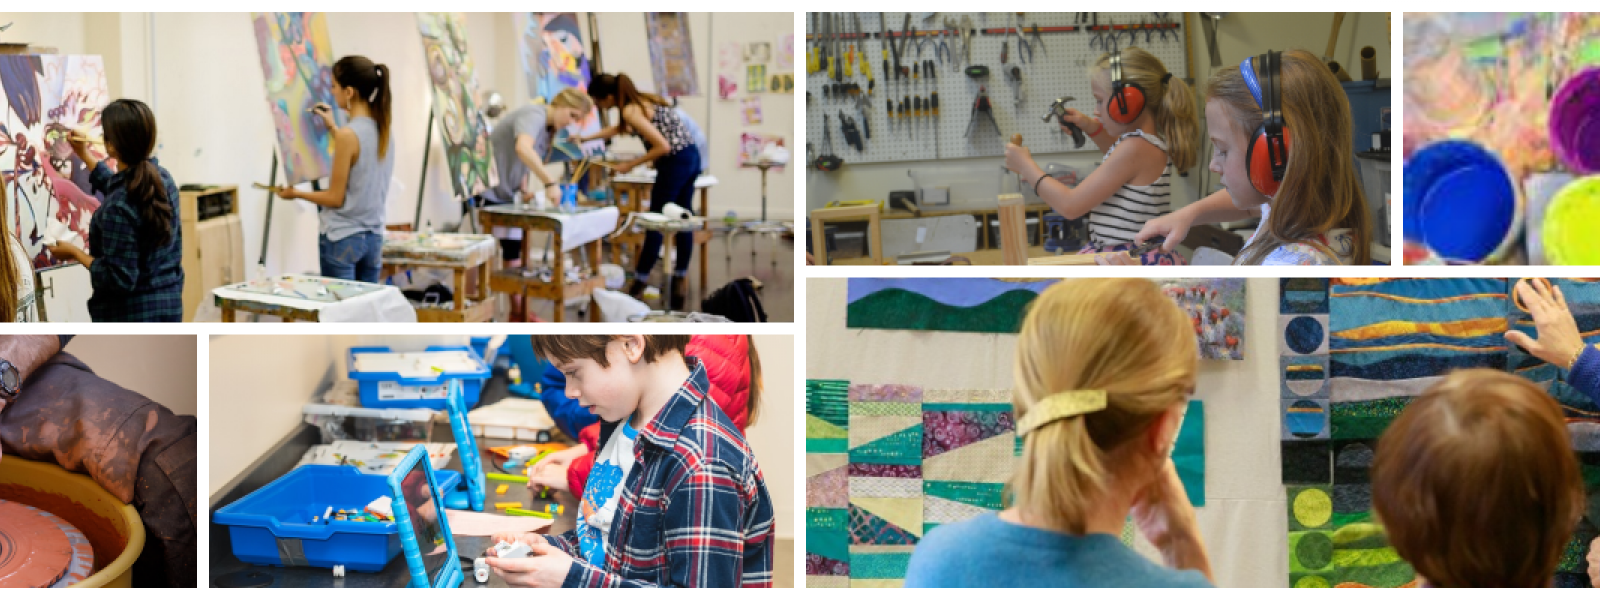 Arts Education Classes for Adults, Teens and Youth -- All Levels of Experience